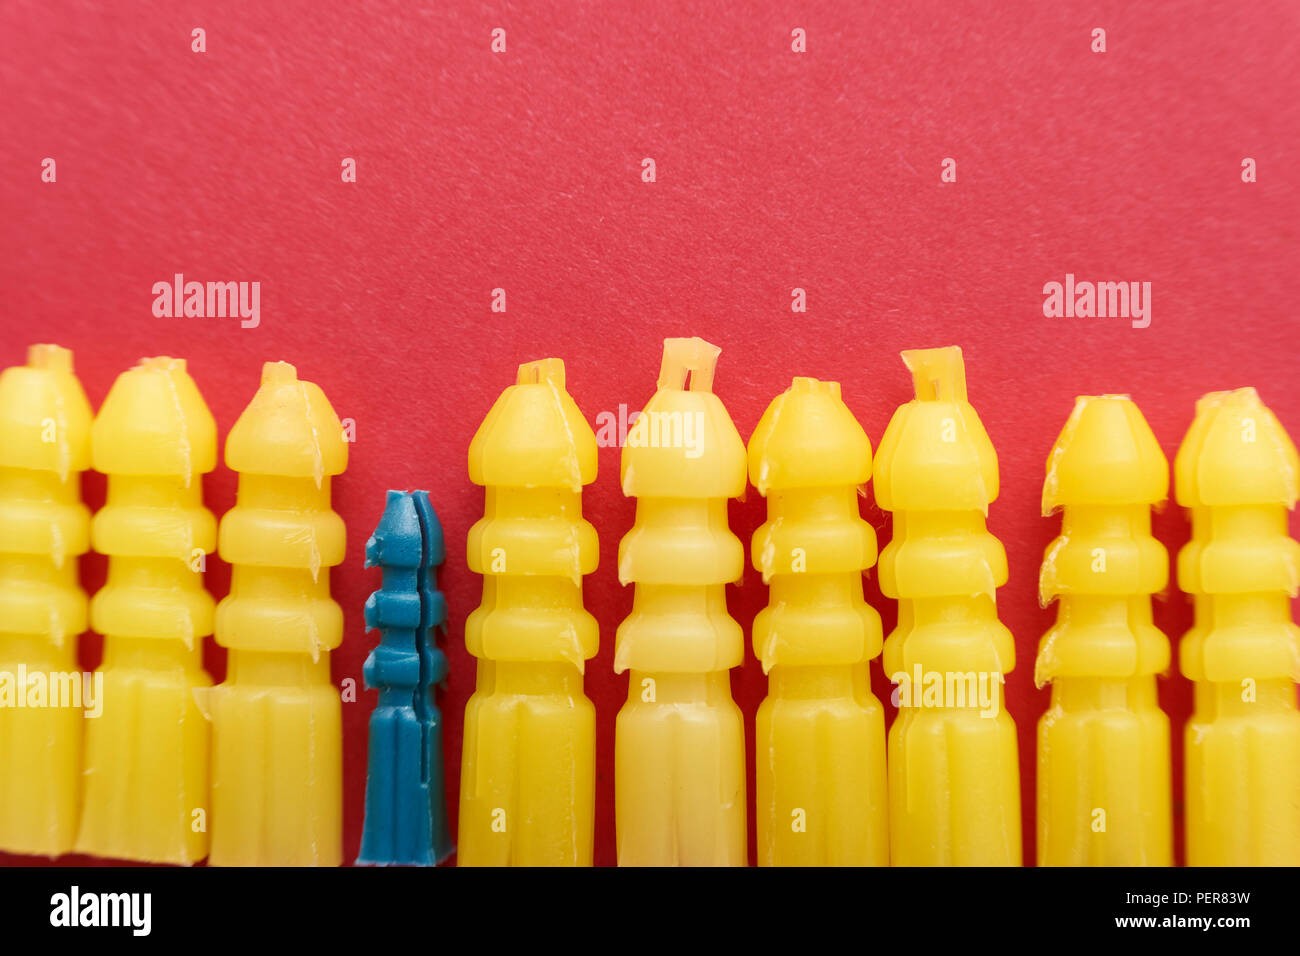 Plastic screw plugs, showing a difference - Stock Image